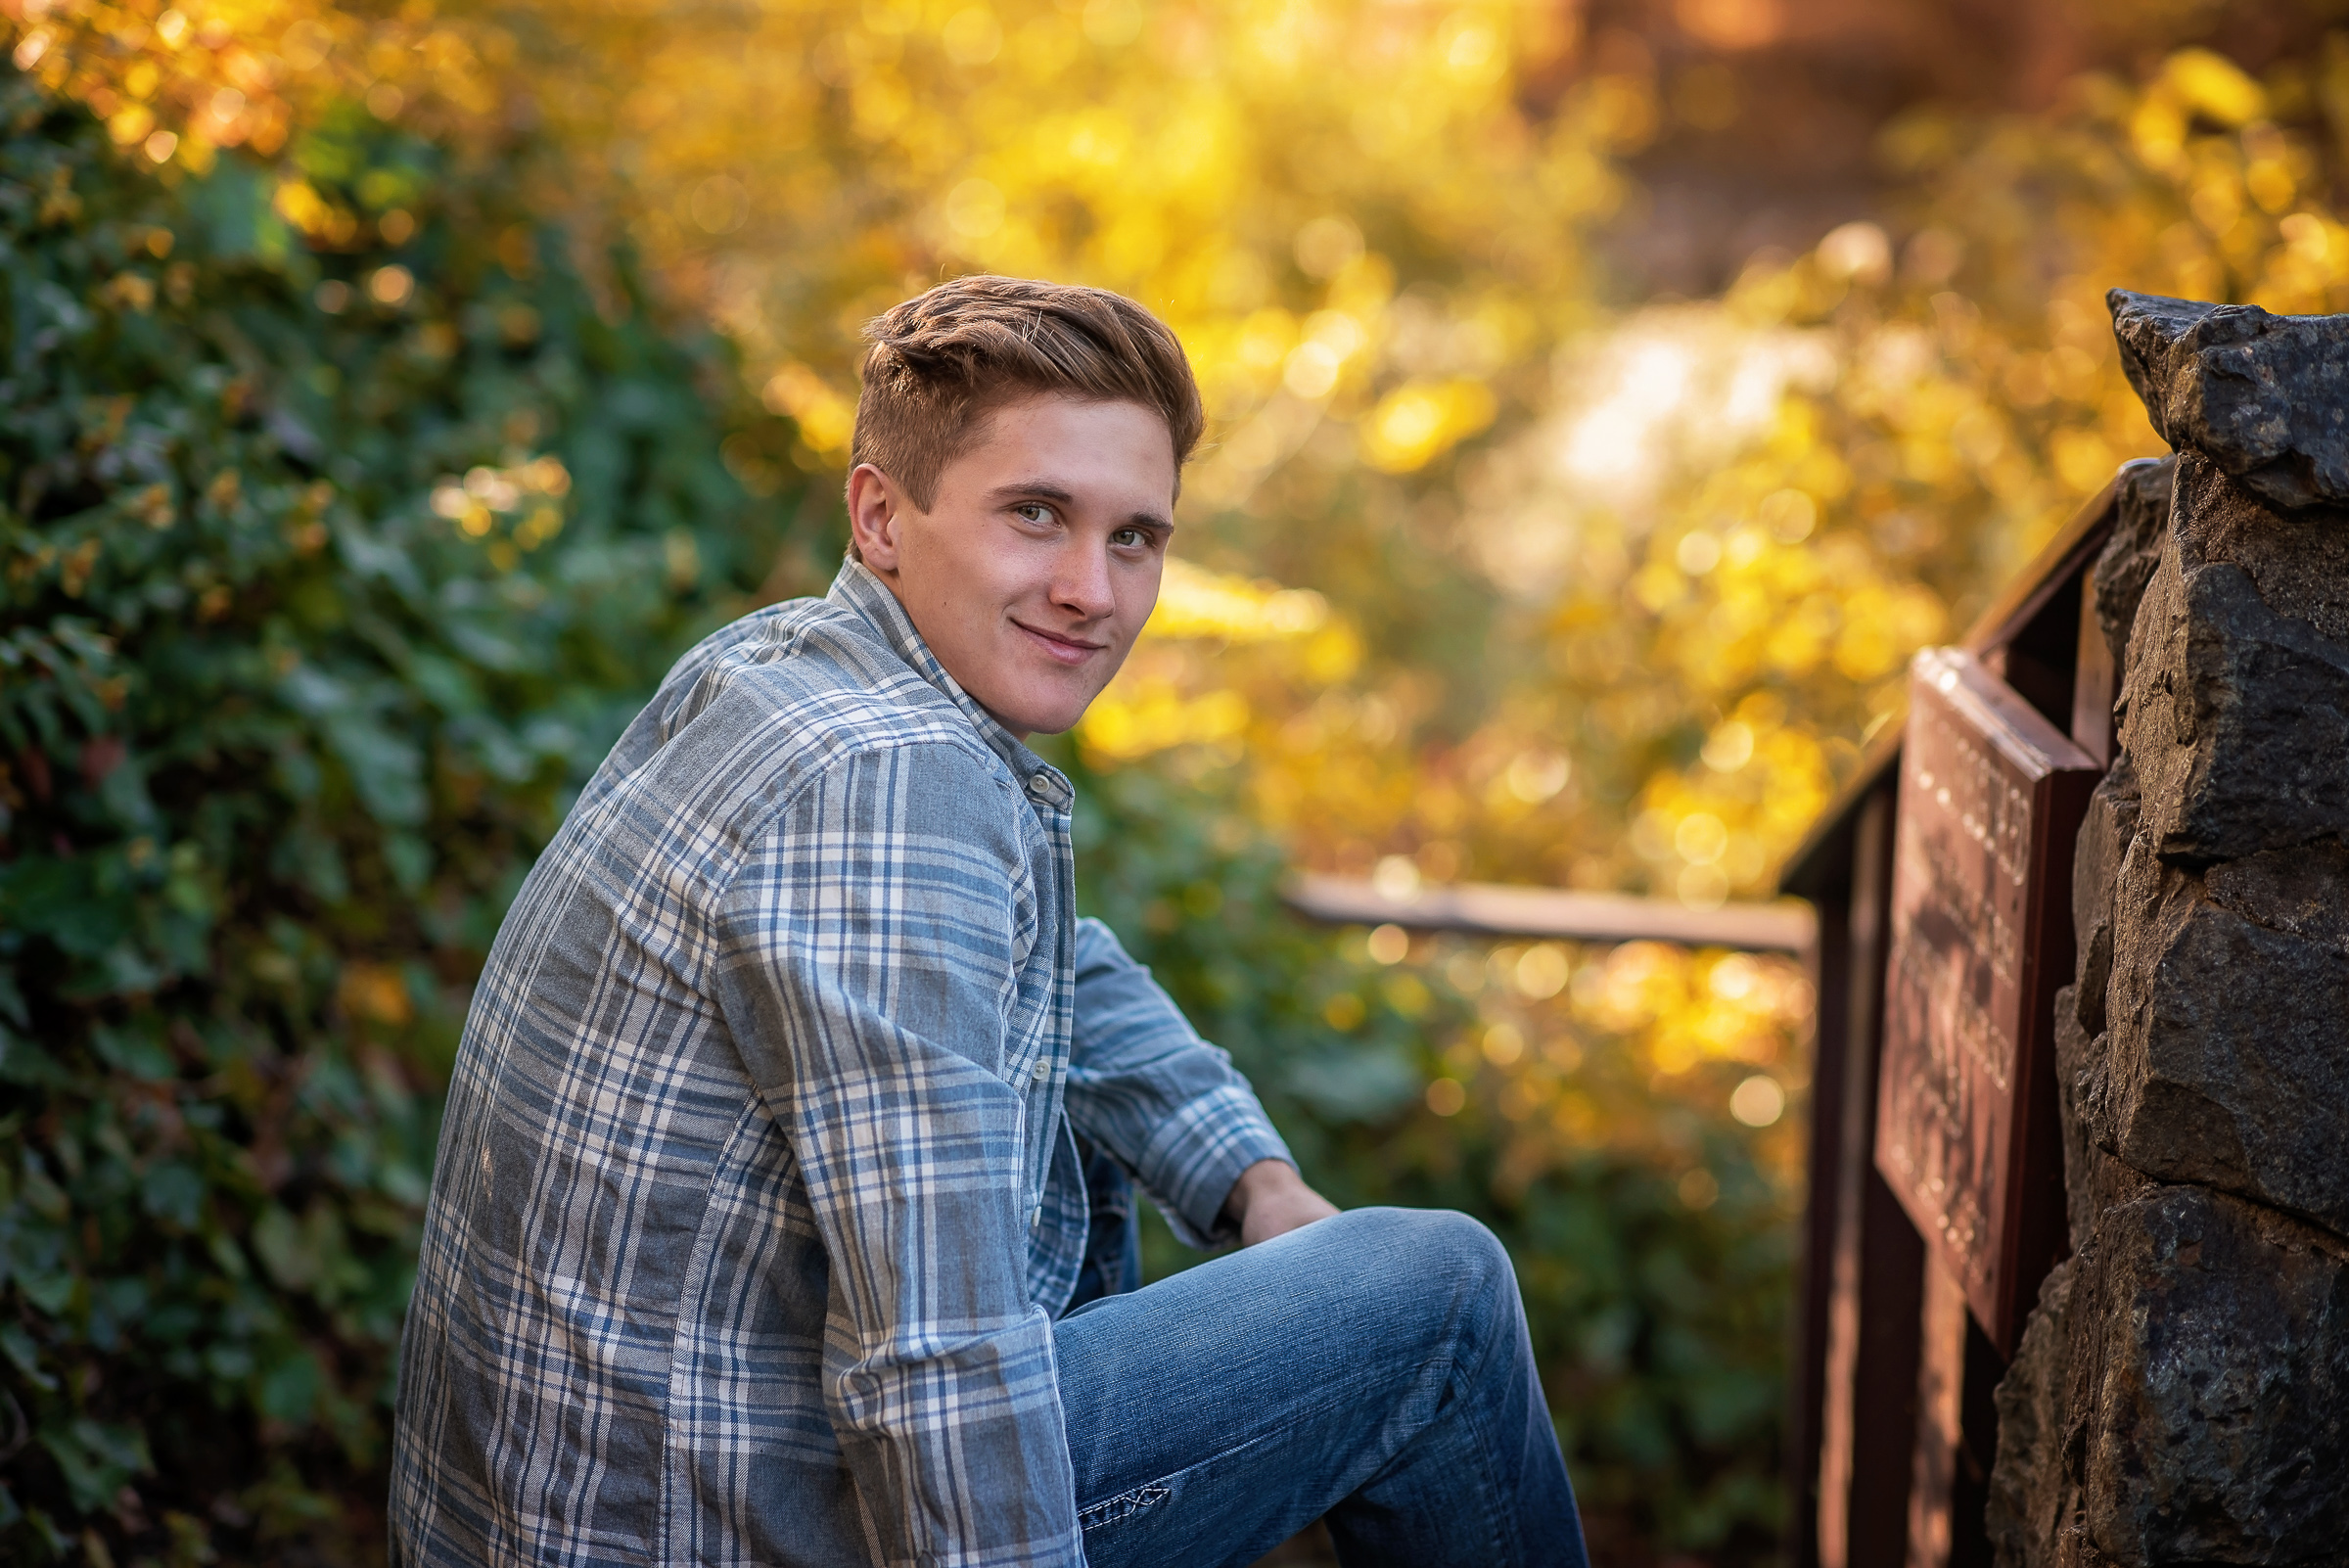 Cody's-Benbow Inn-Humboldt County-Senior Session-Parky's Pics_-9.JPG